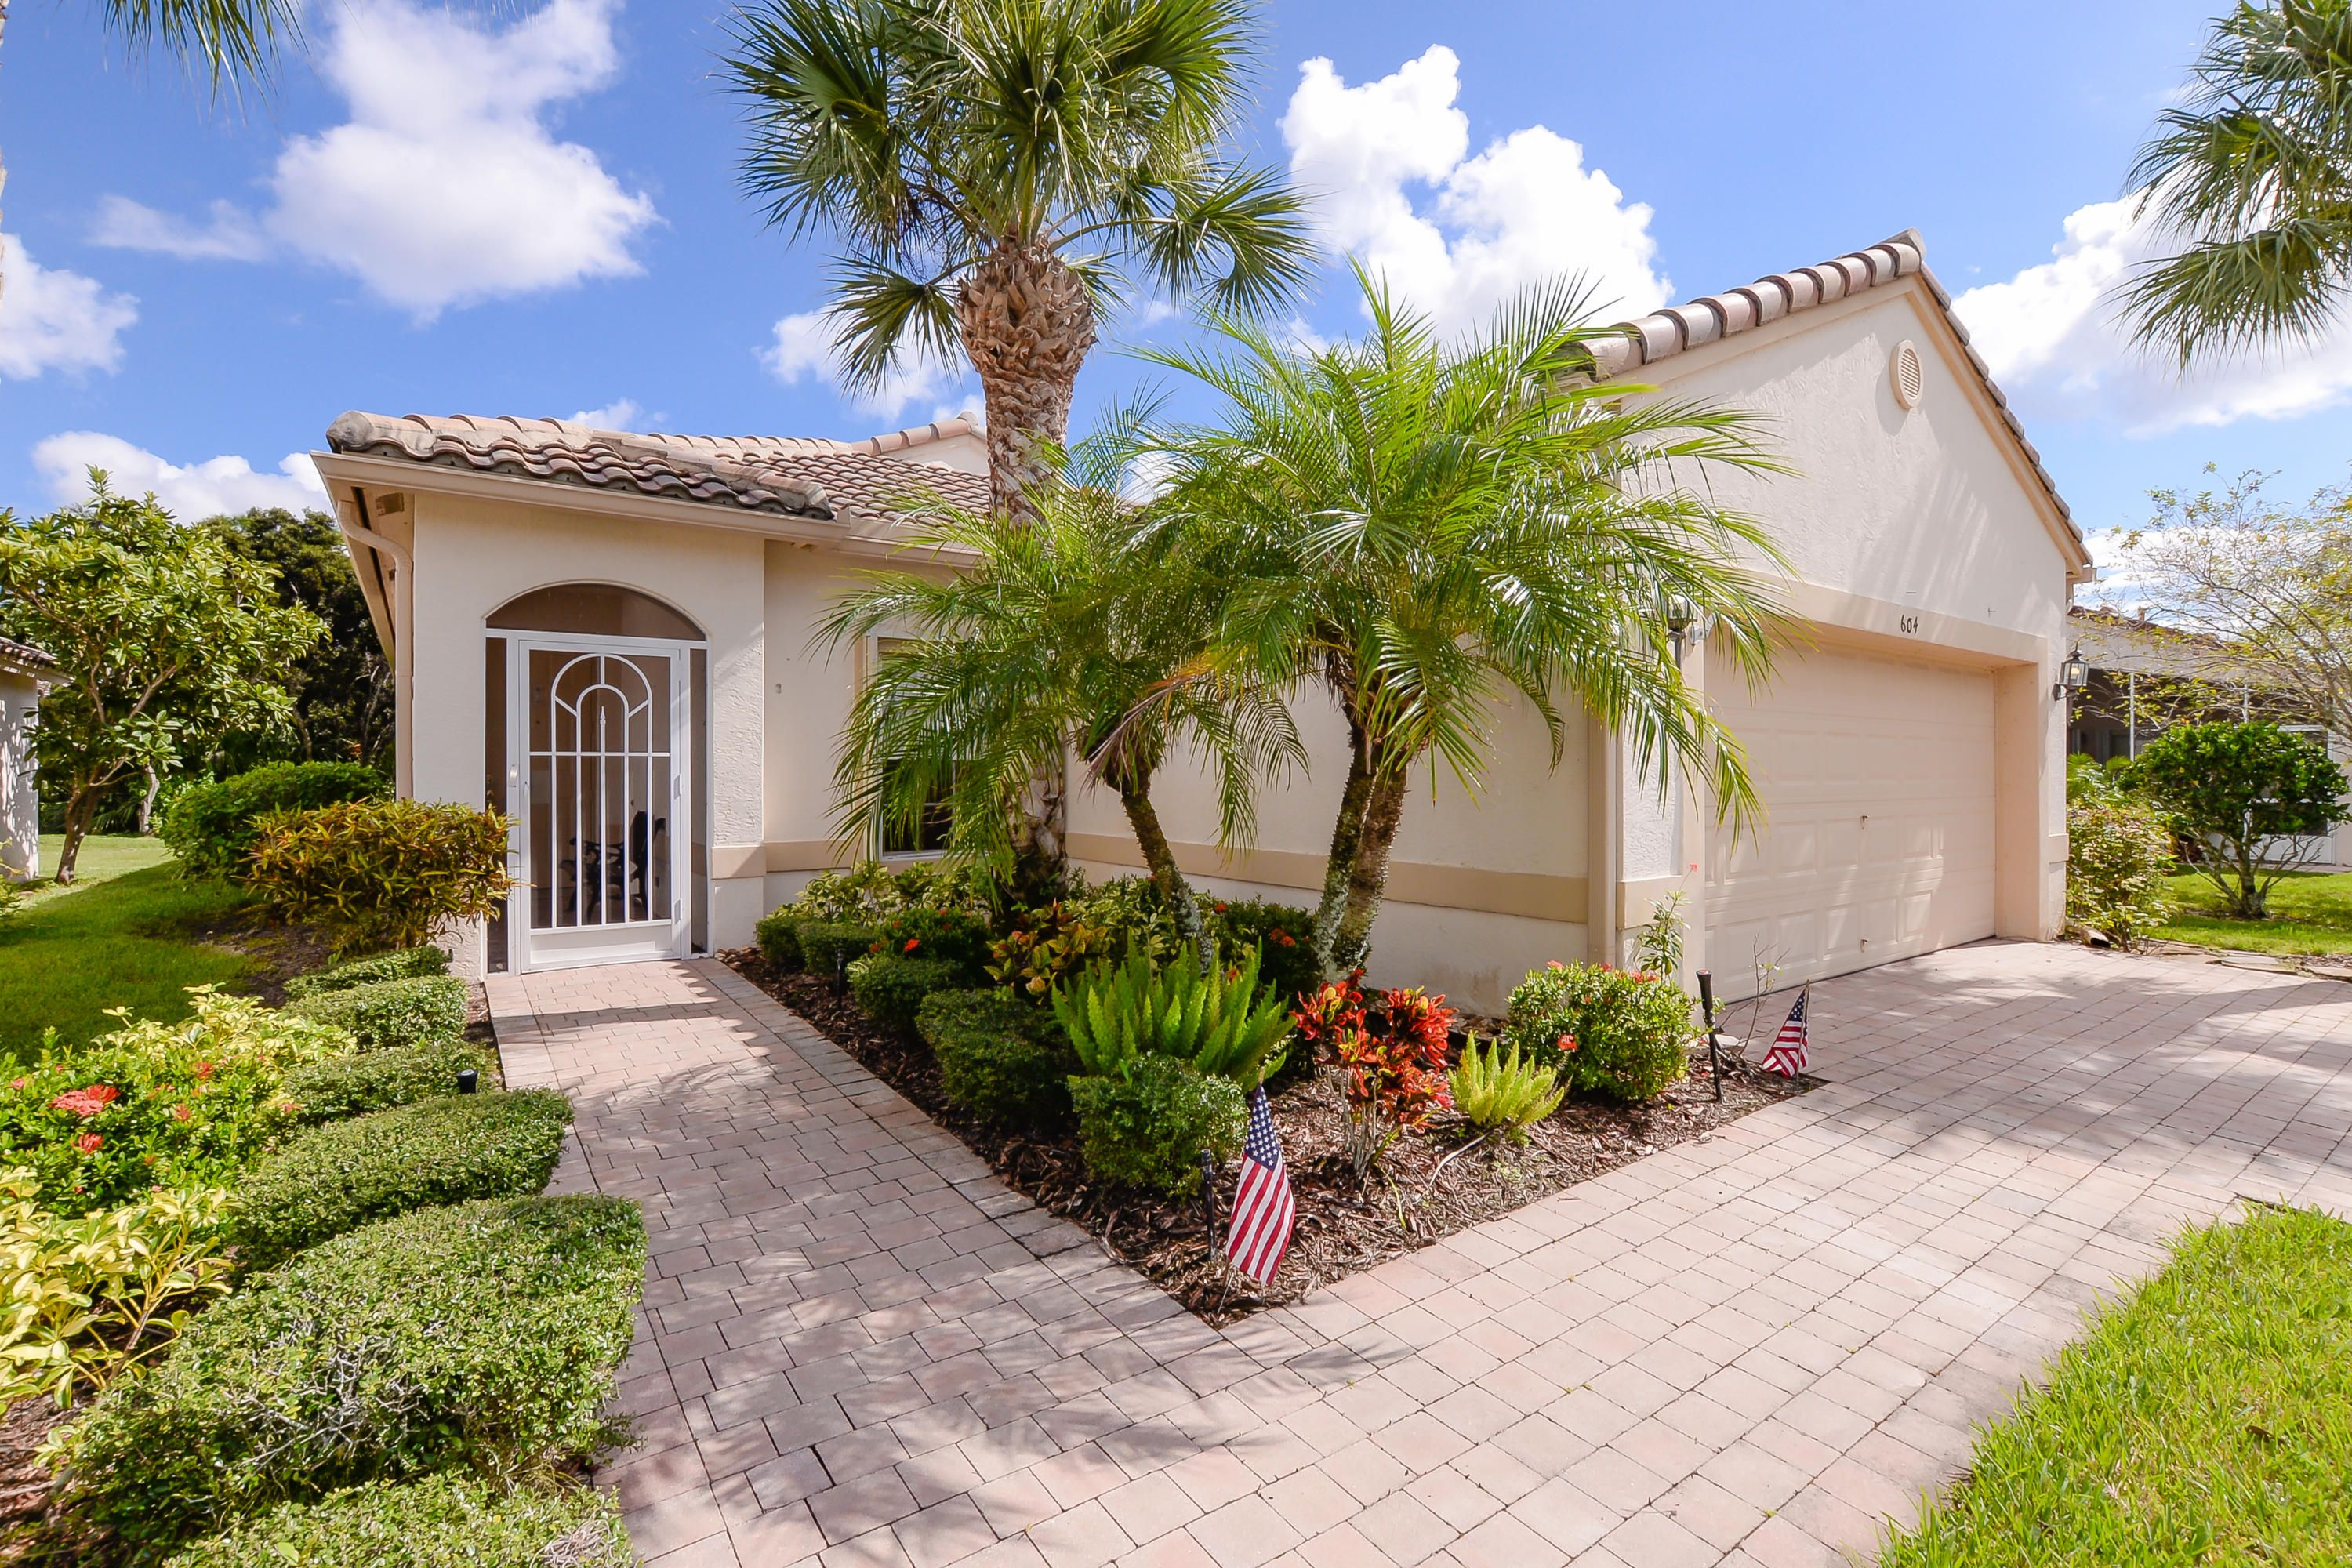 Southwest Florida Real Estate Listings With Images